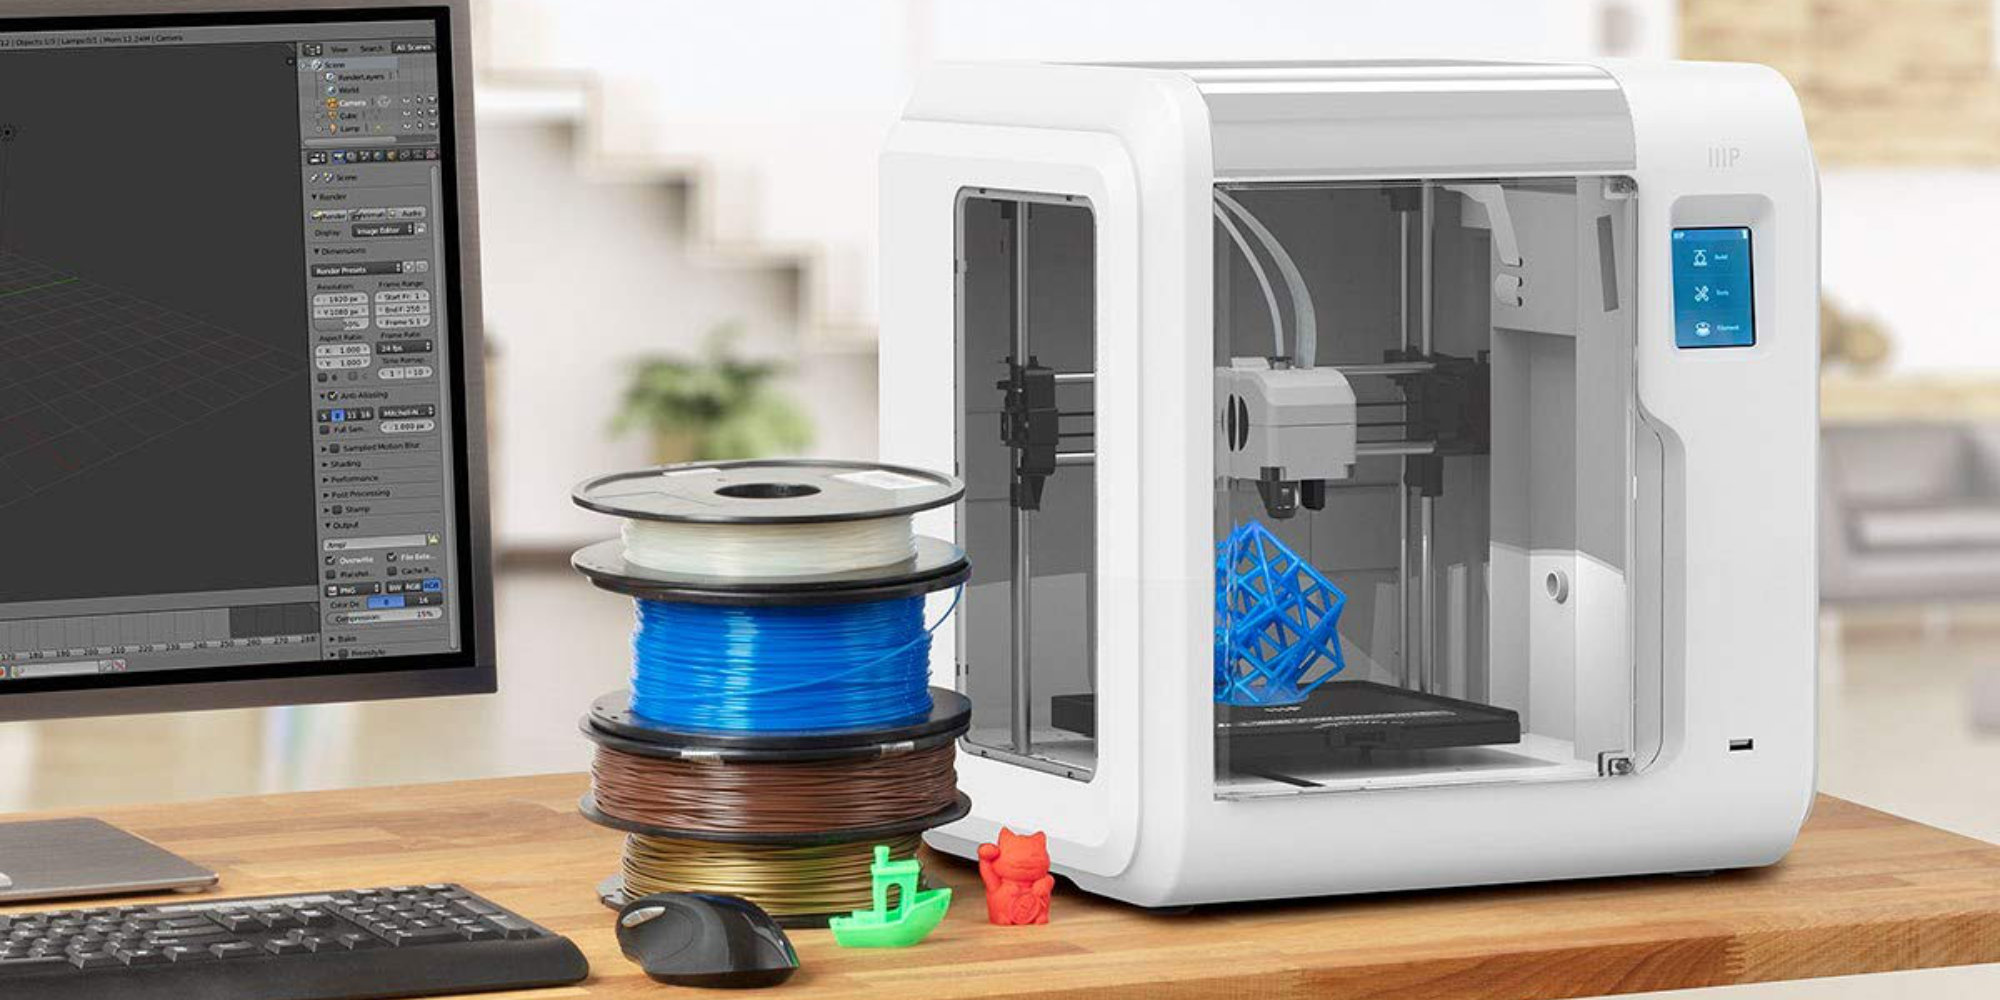 Build your own gadgets w/ a Monoprice Voxel 3D Printer for $272 shipped (save $50+)